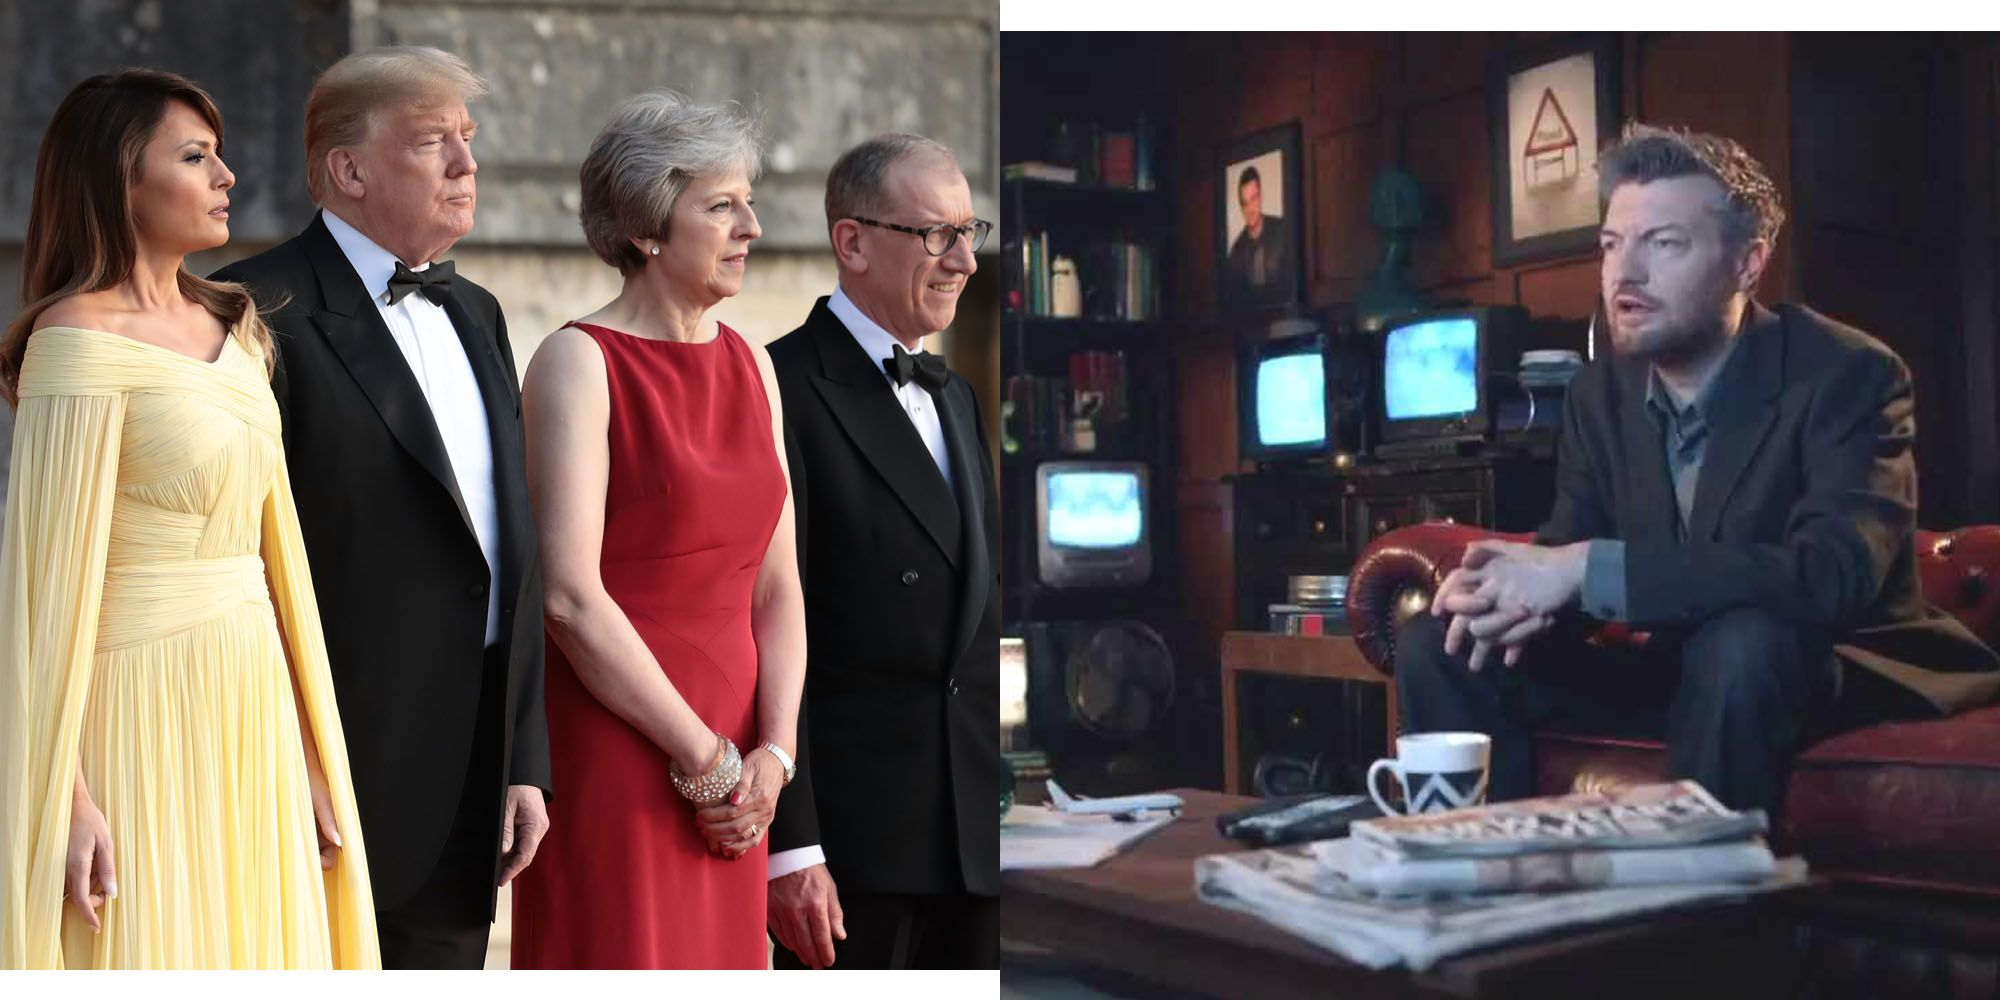 Donald Trump Charlie Brooker Theresa May